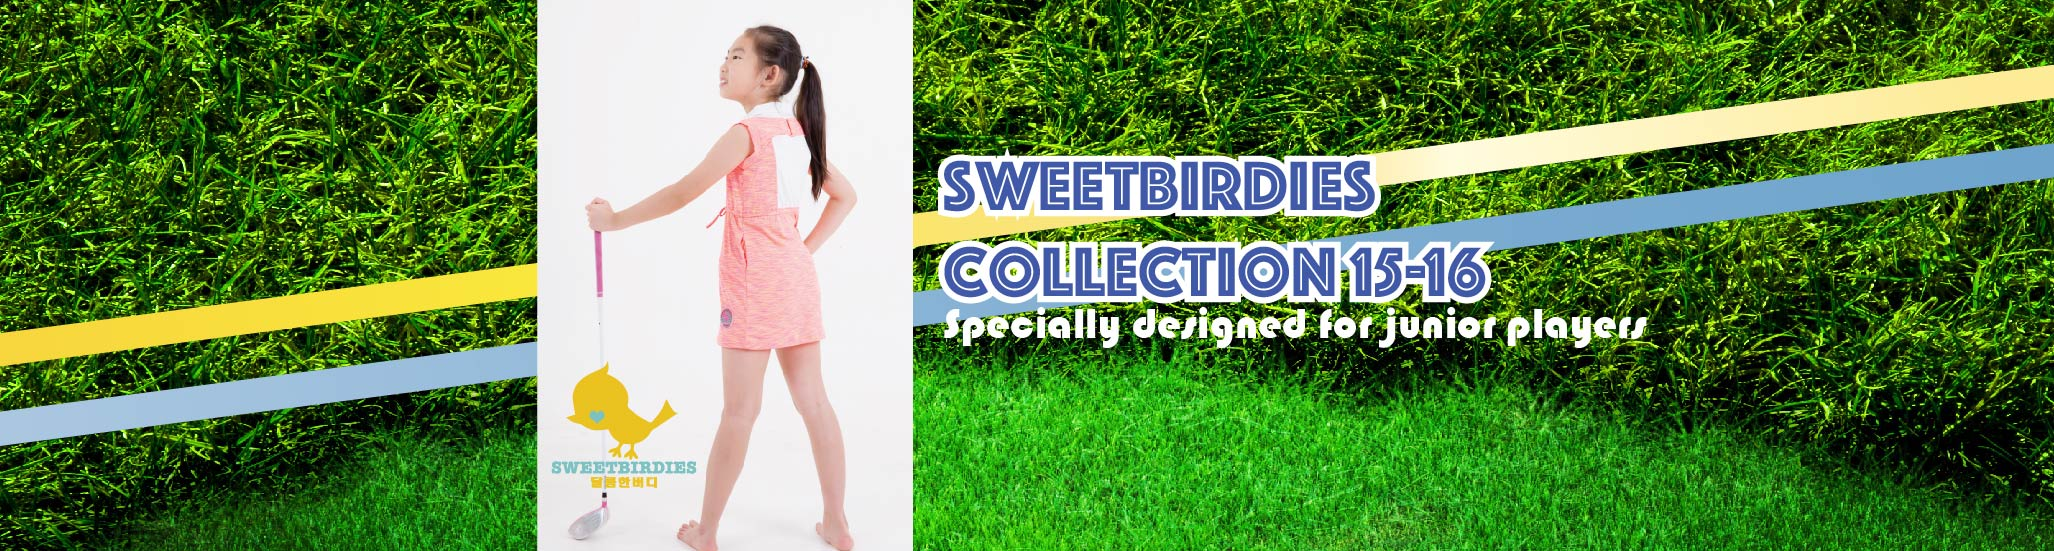 Sweetbirdies 15-16 collection